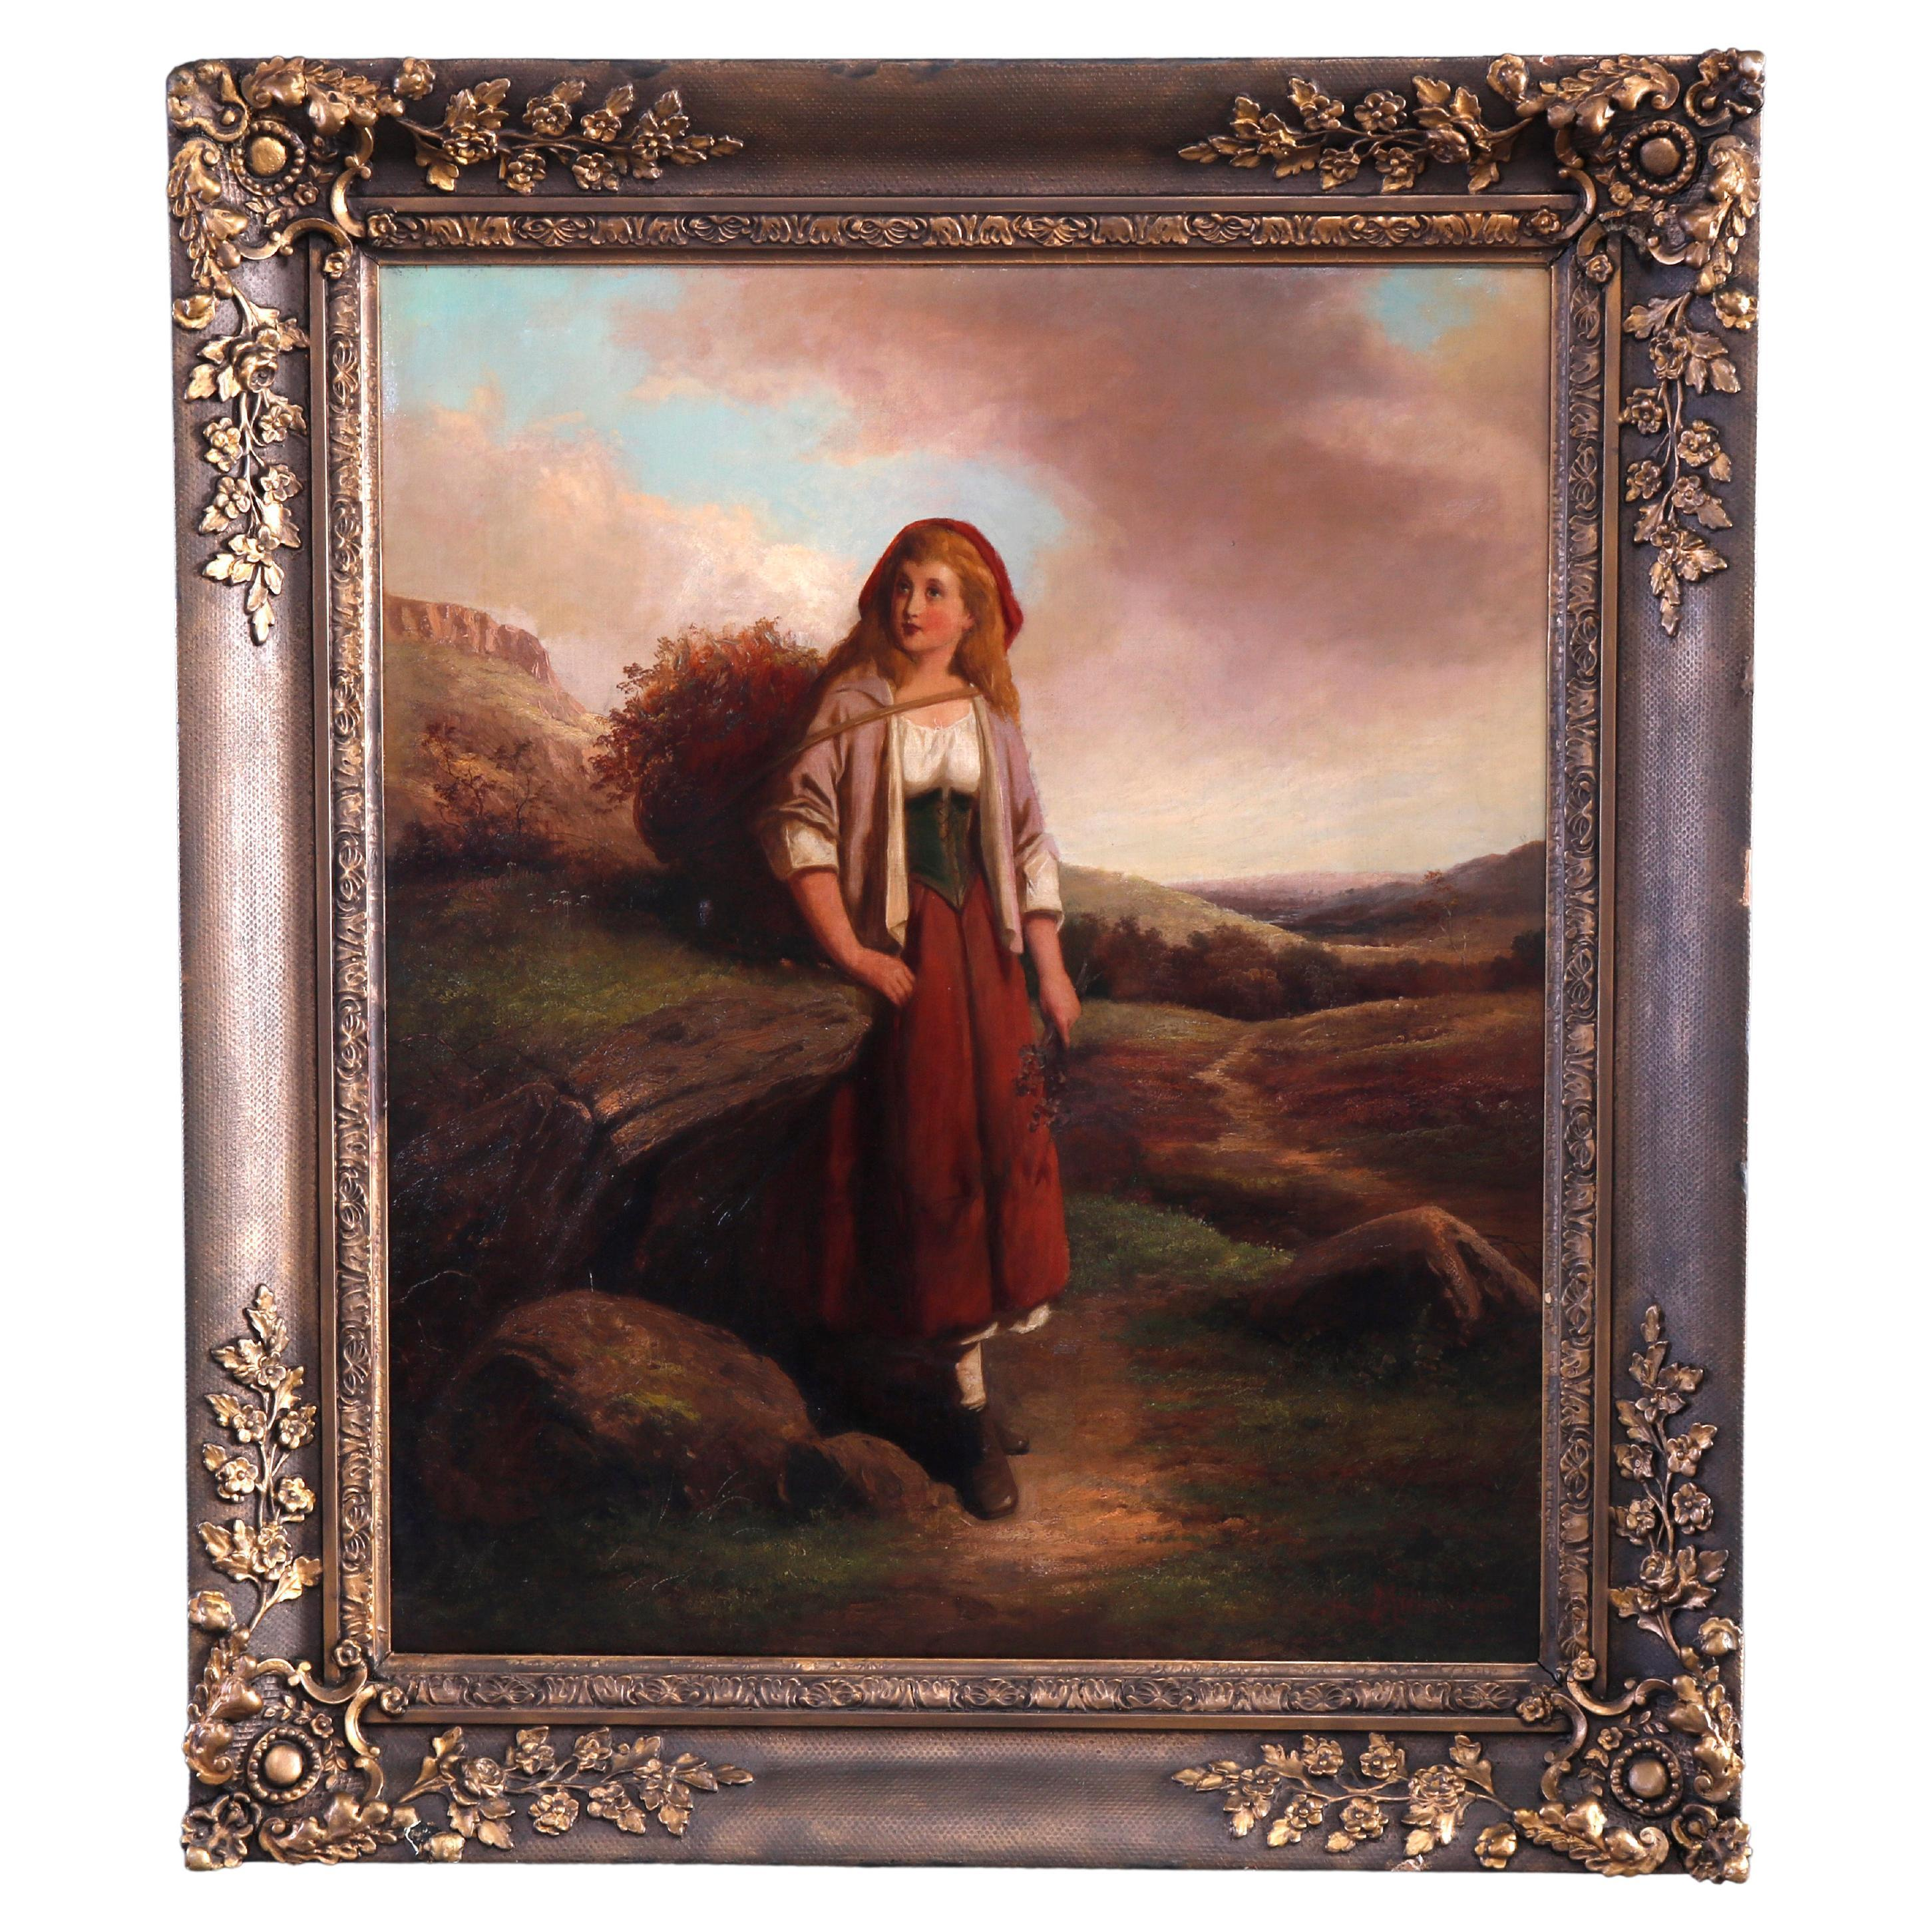 Antique English Portrait Painting of Young Maiden in Field, Giltwood Frame c1870